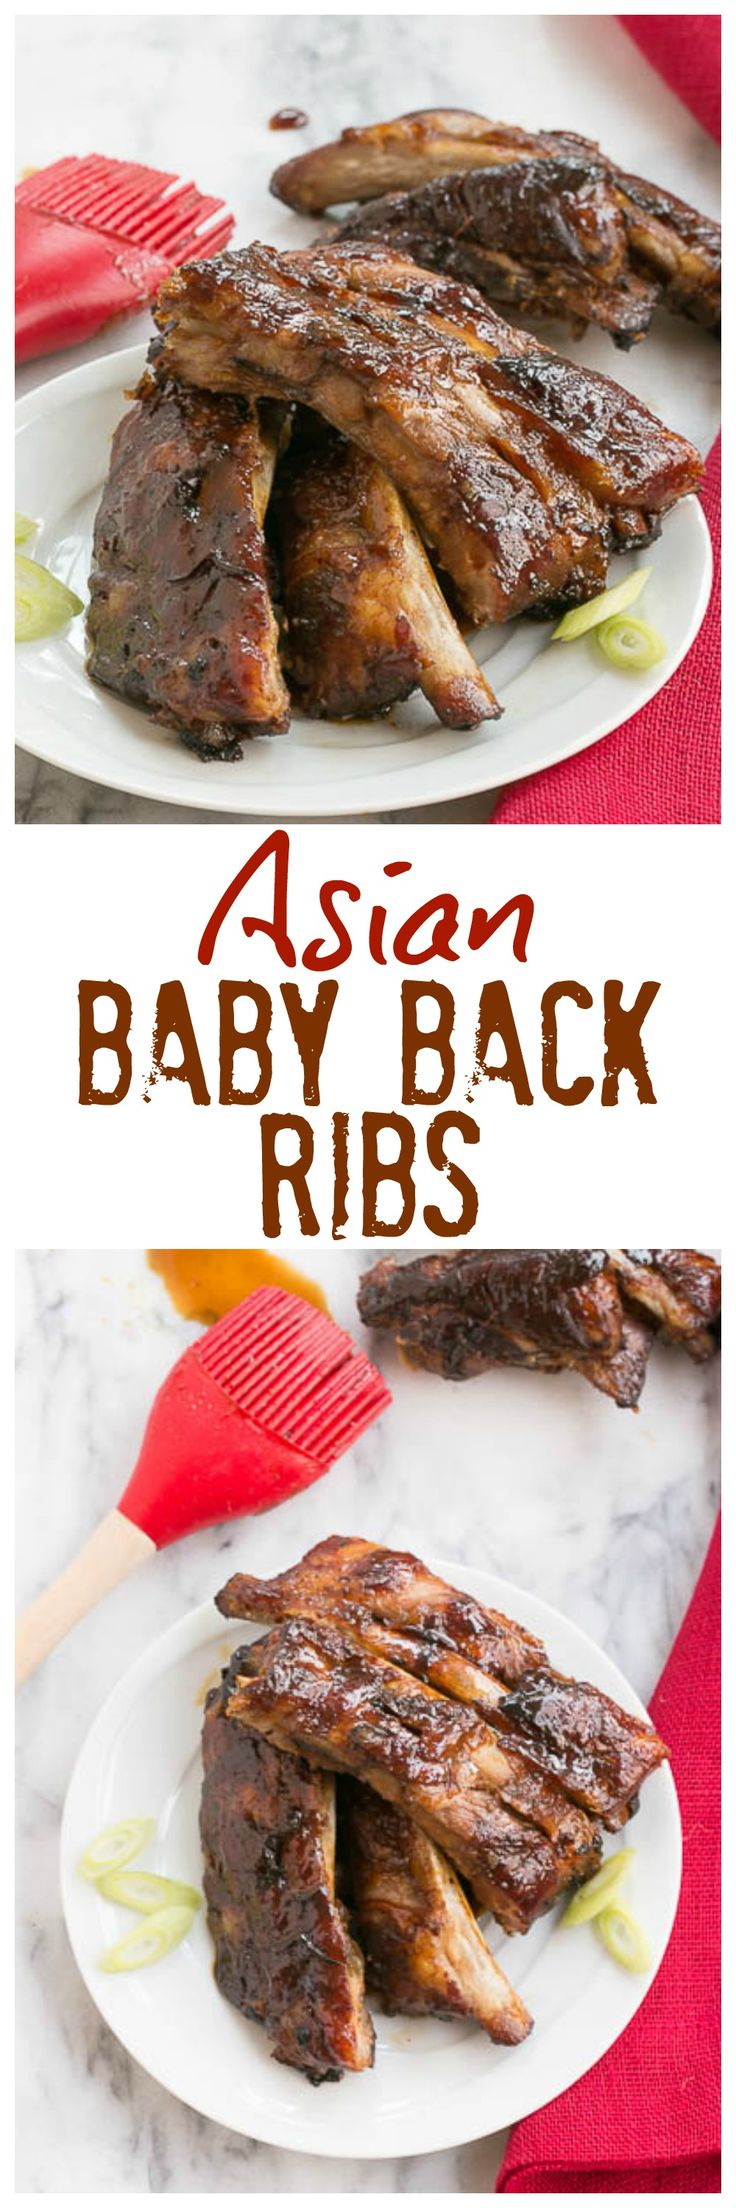 Asian Baby Back Ribs | Finger licking good!! @lizzydo